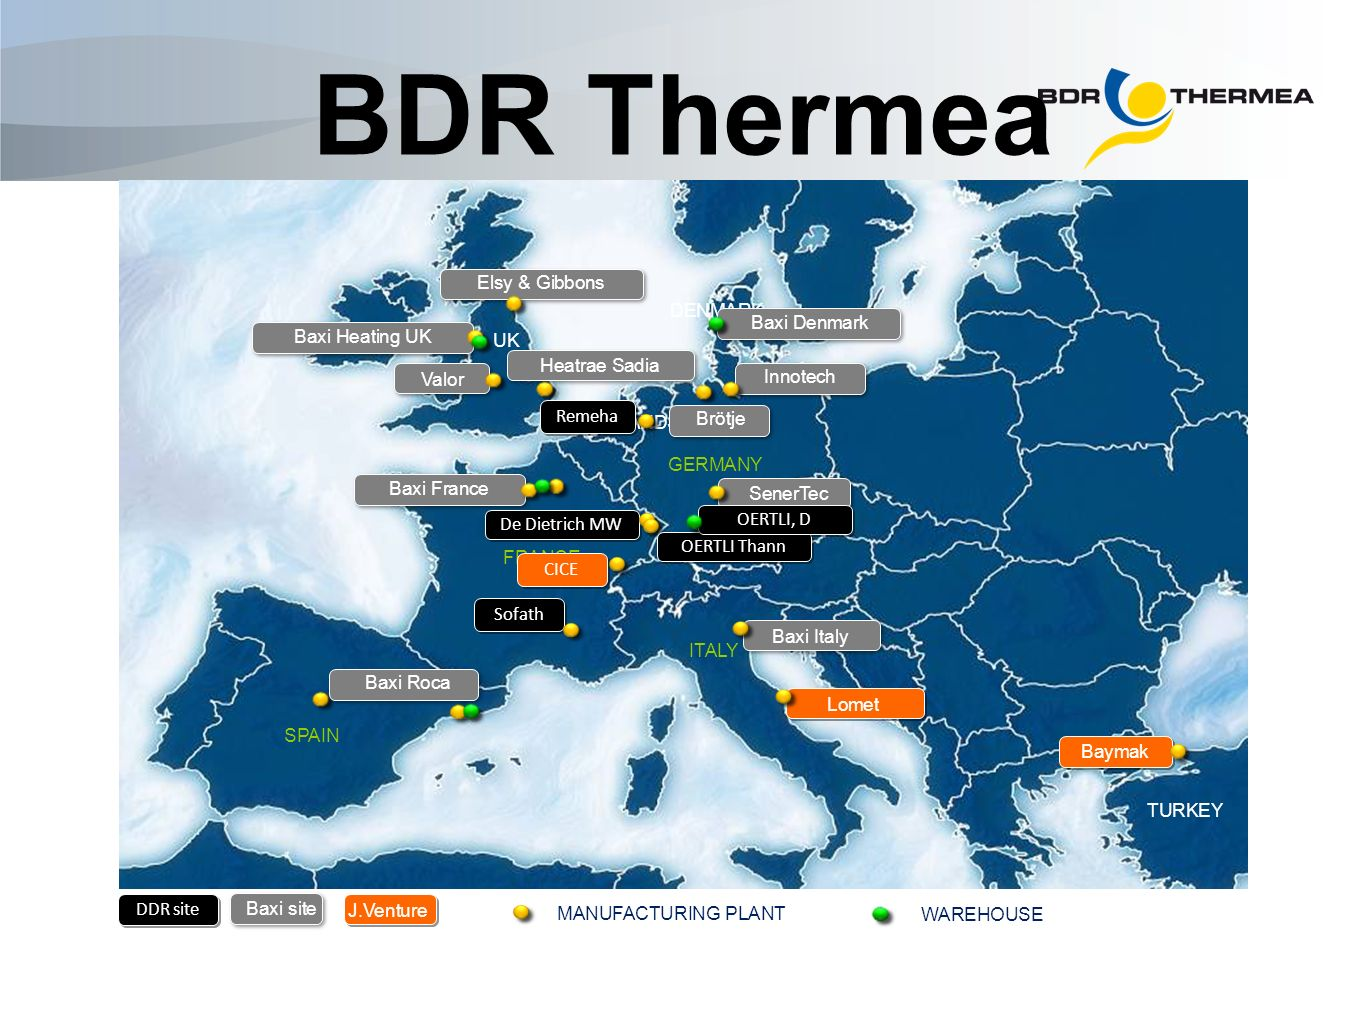 BDR Thermea currently has 21 locations SPAIN FRANCE ITALY TURKEY MANUFACTURING PLANT GERMANY DENMARK NETHERLANDS UK Baxi Heating UK Elsy & Gibbons Bax